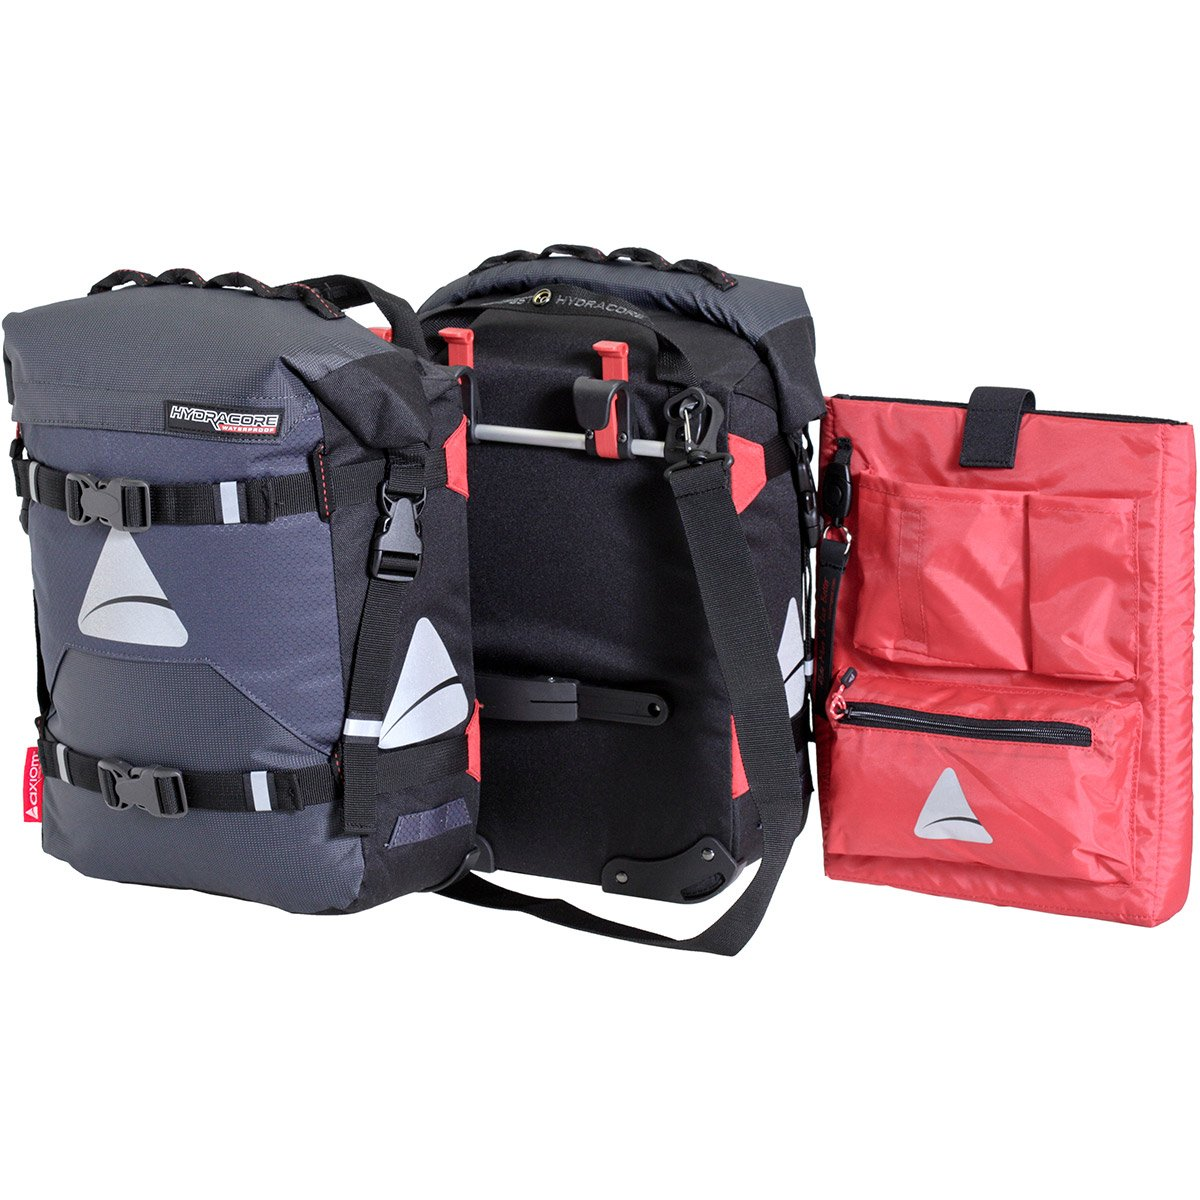 Axiom Tempest Hydracore P35 Plus Panniers: Gray by Axiom (Image #1)